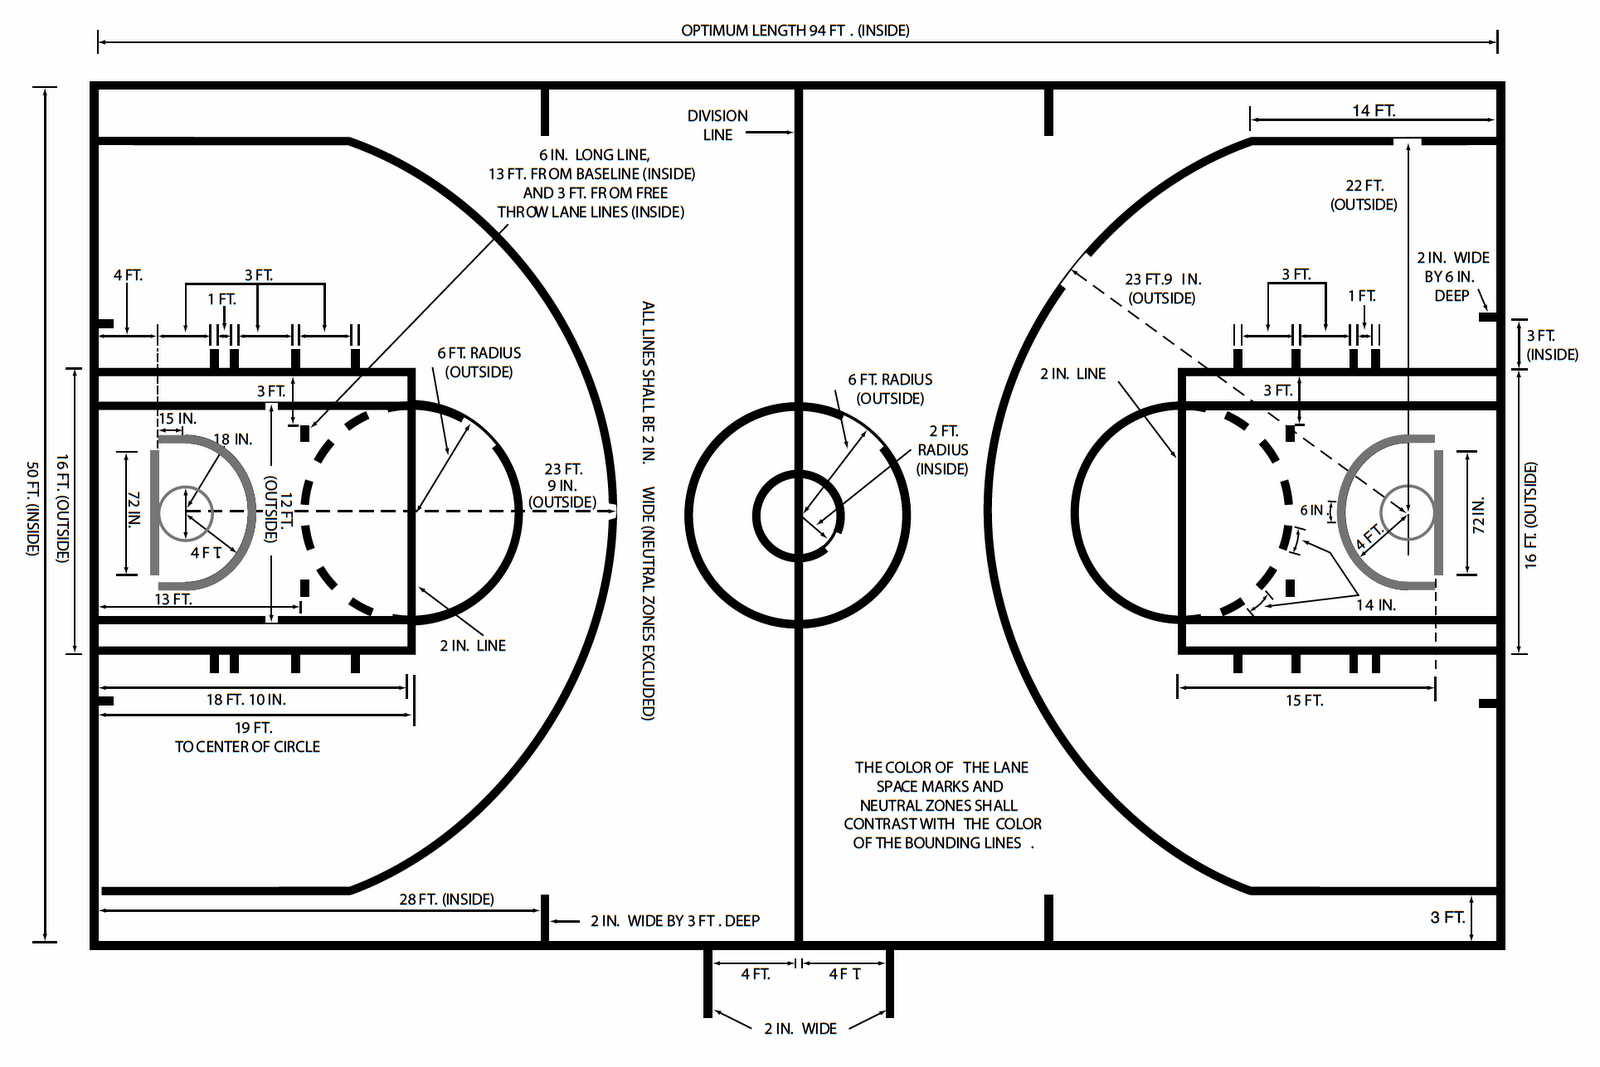 Nba Court Dimensions H Png 1 600 1 067 Pixels Basketball Court Size Basketball Court Layout Basketball Court Measurements